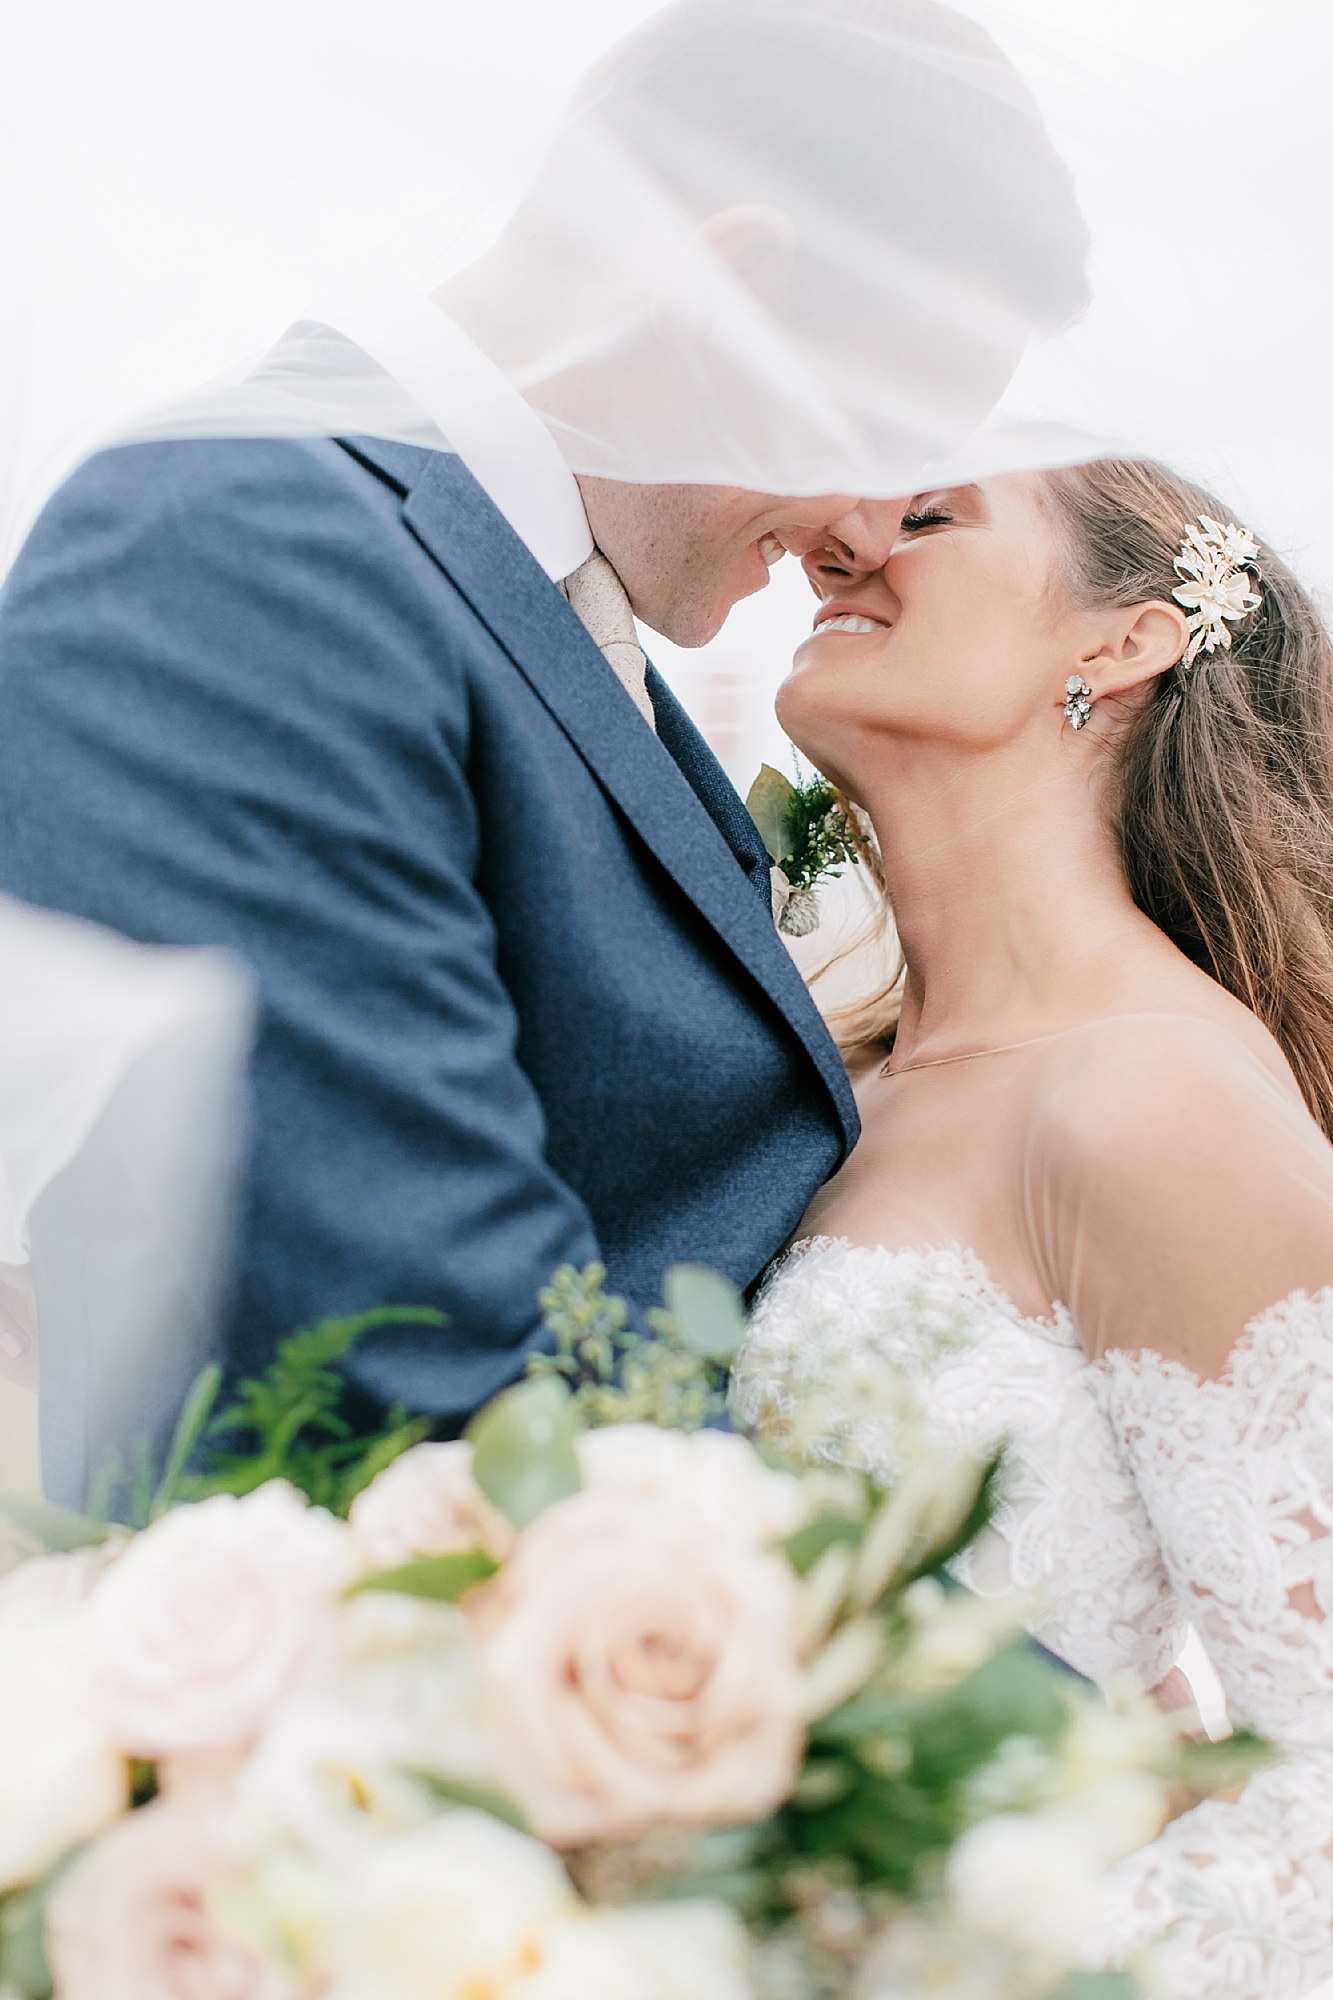 Intimate and Joyful Wedding Photography in Cape May NJ by Magdalena Studios 0027 4